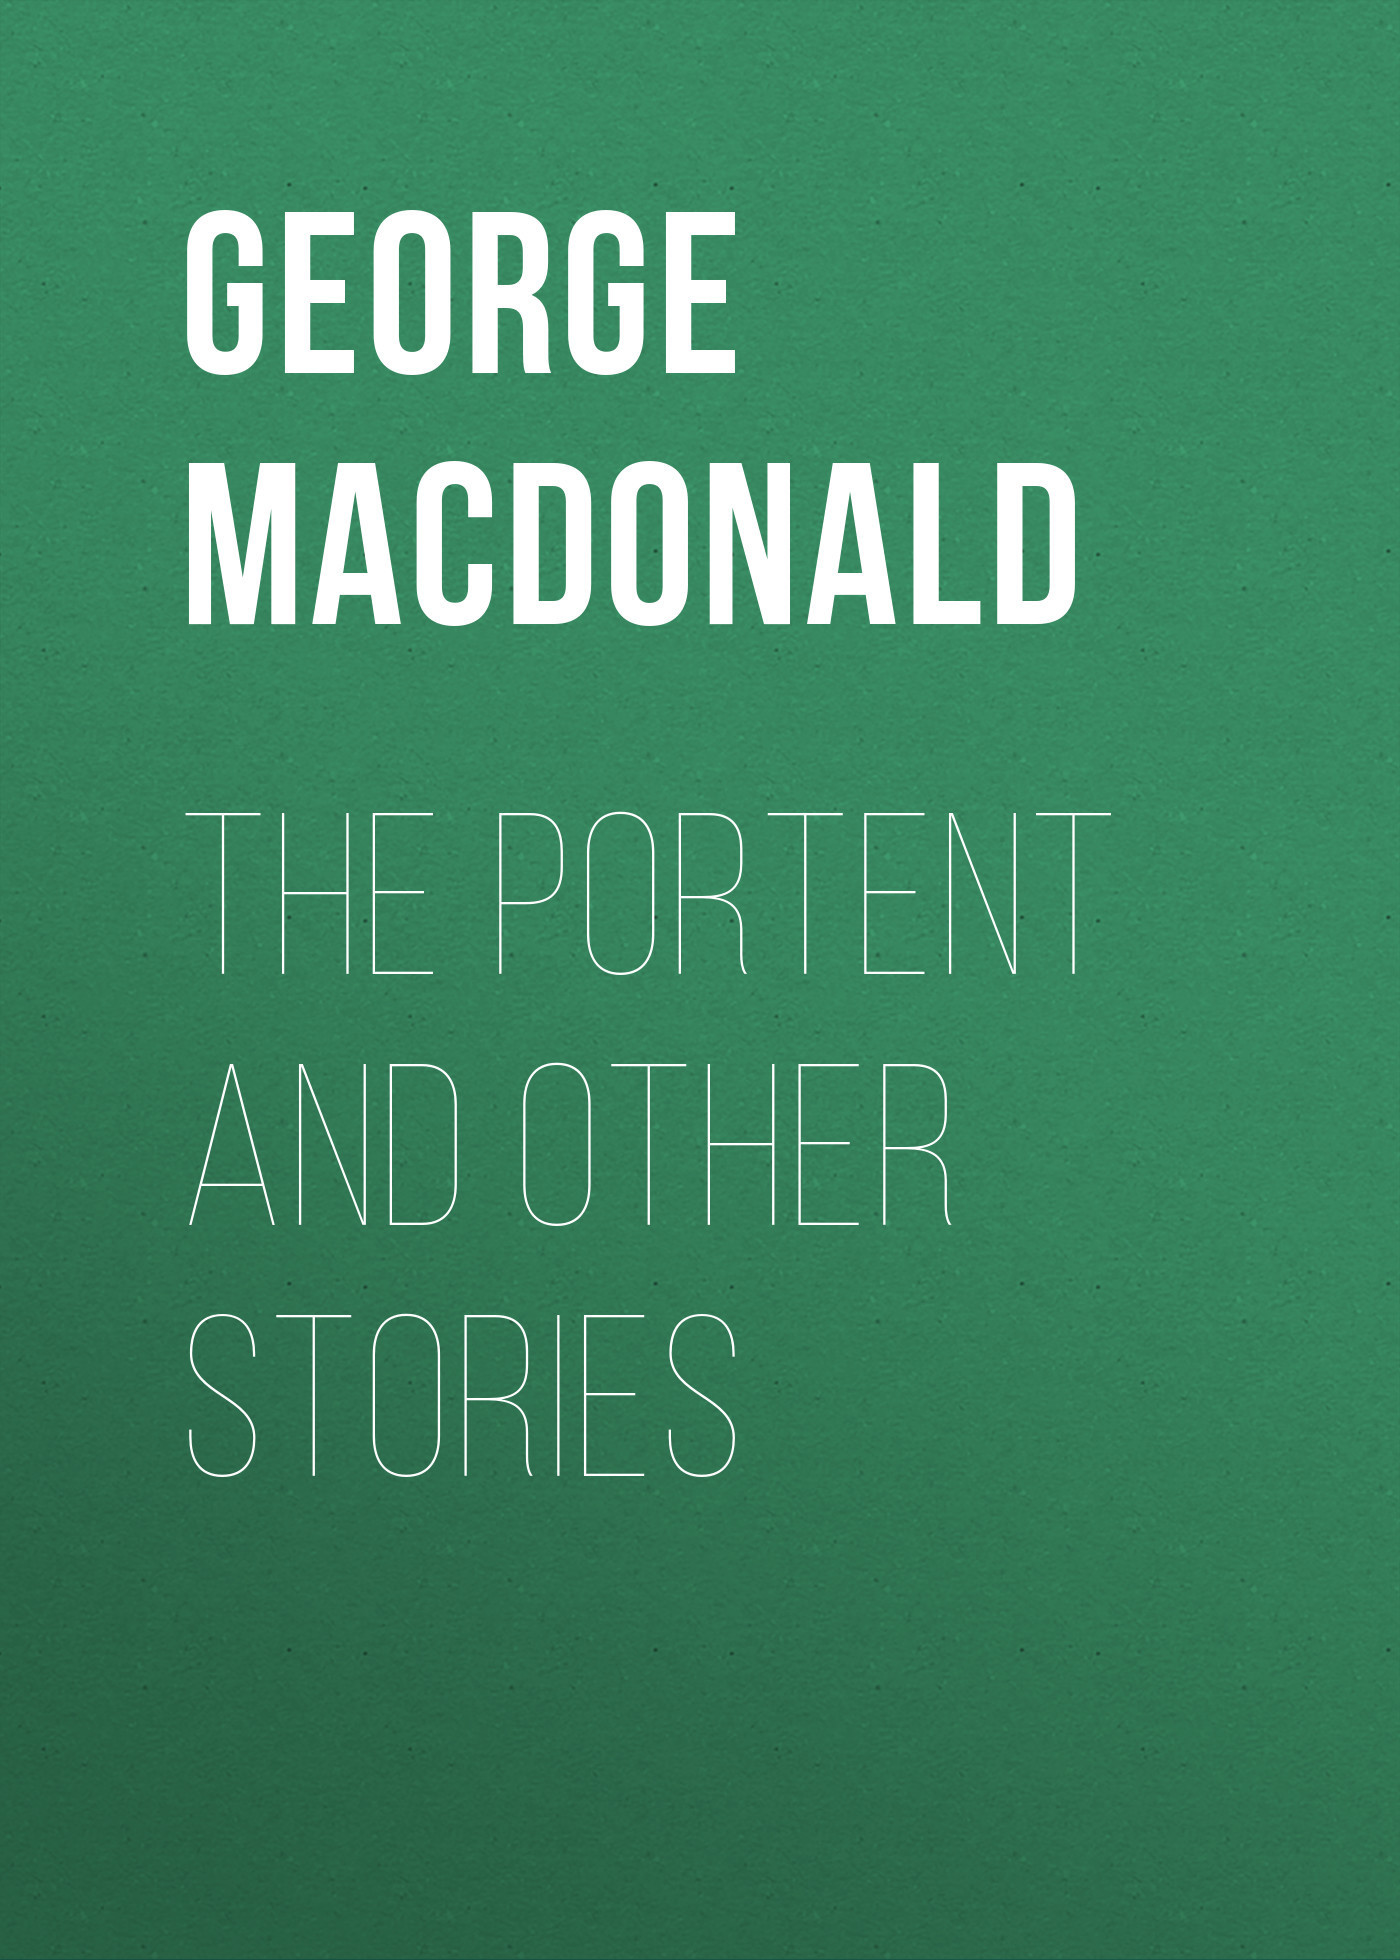 George MacDonald The Portent and Other Stories vitaly mushkin erotic stories top ten